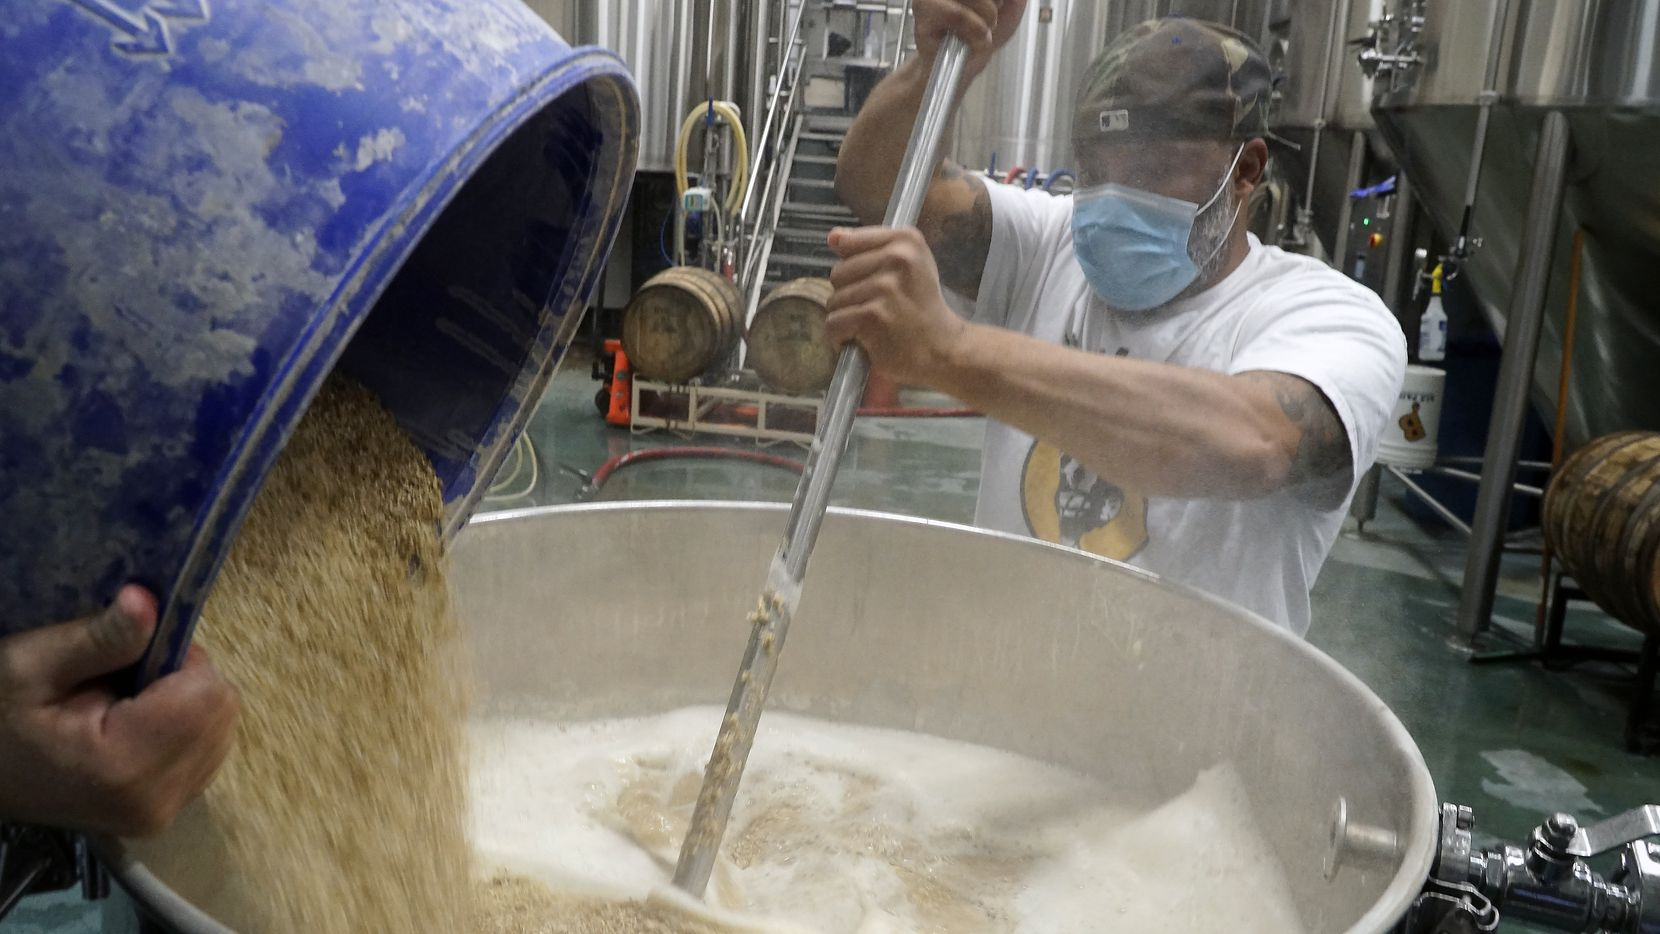 Kuumba Smith mashes the grain for a kettle sour beer he's making at Hop & Sting Brewing Co. in Grapevine.